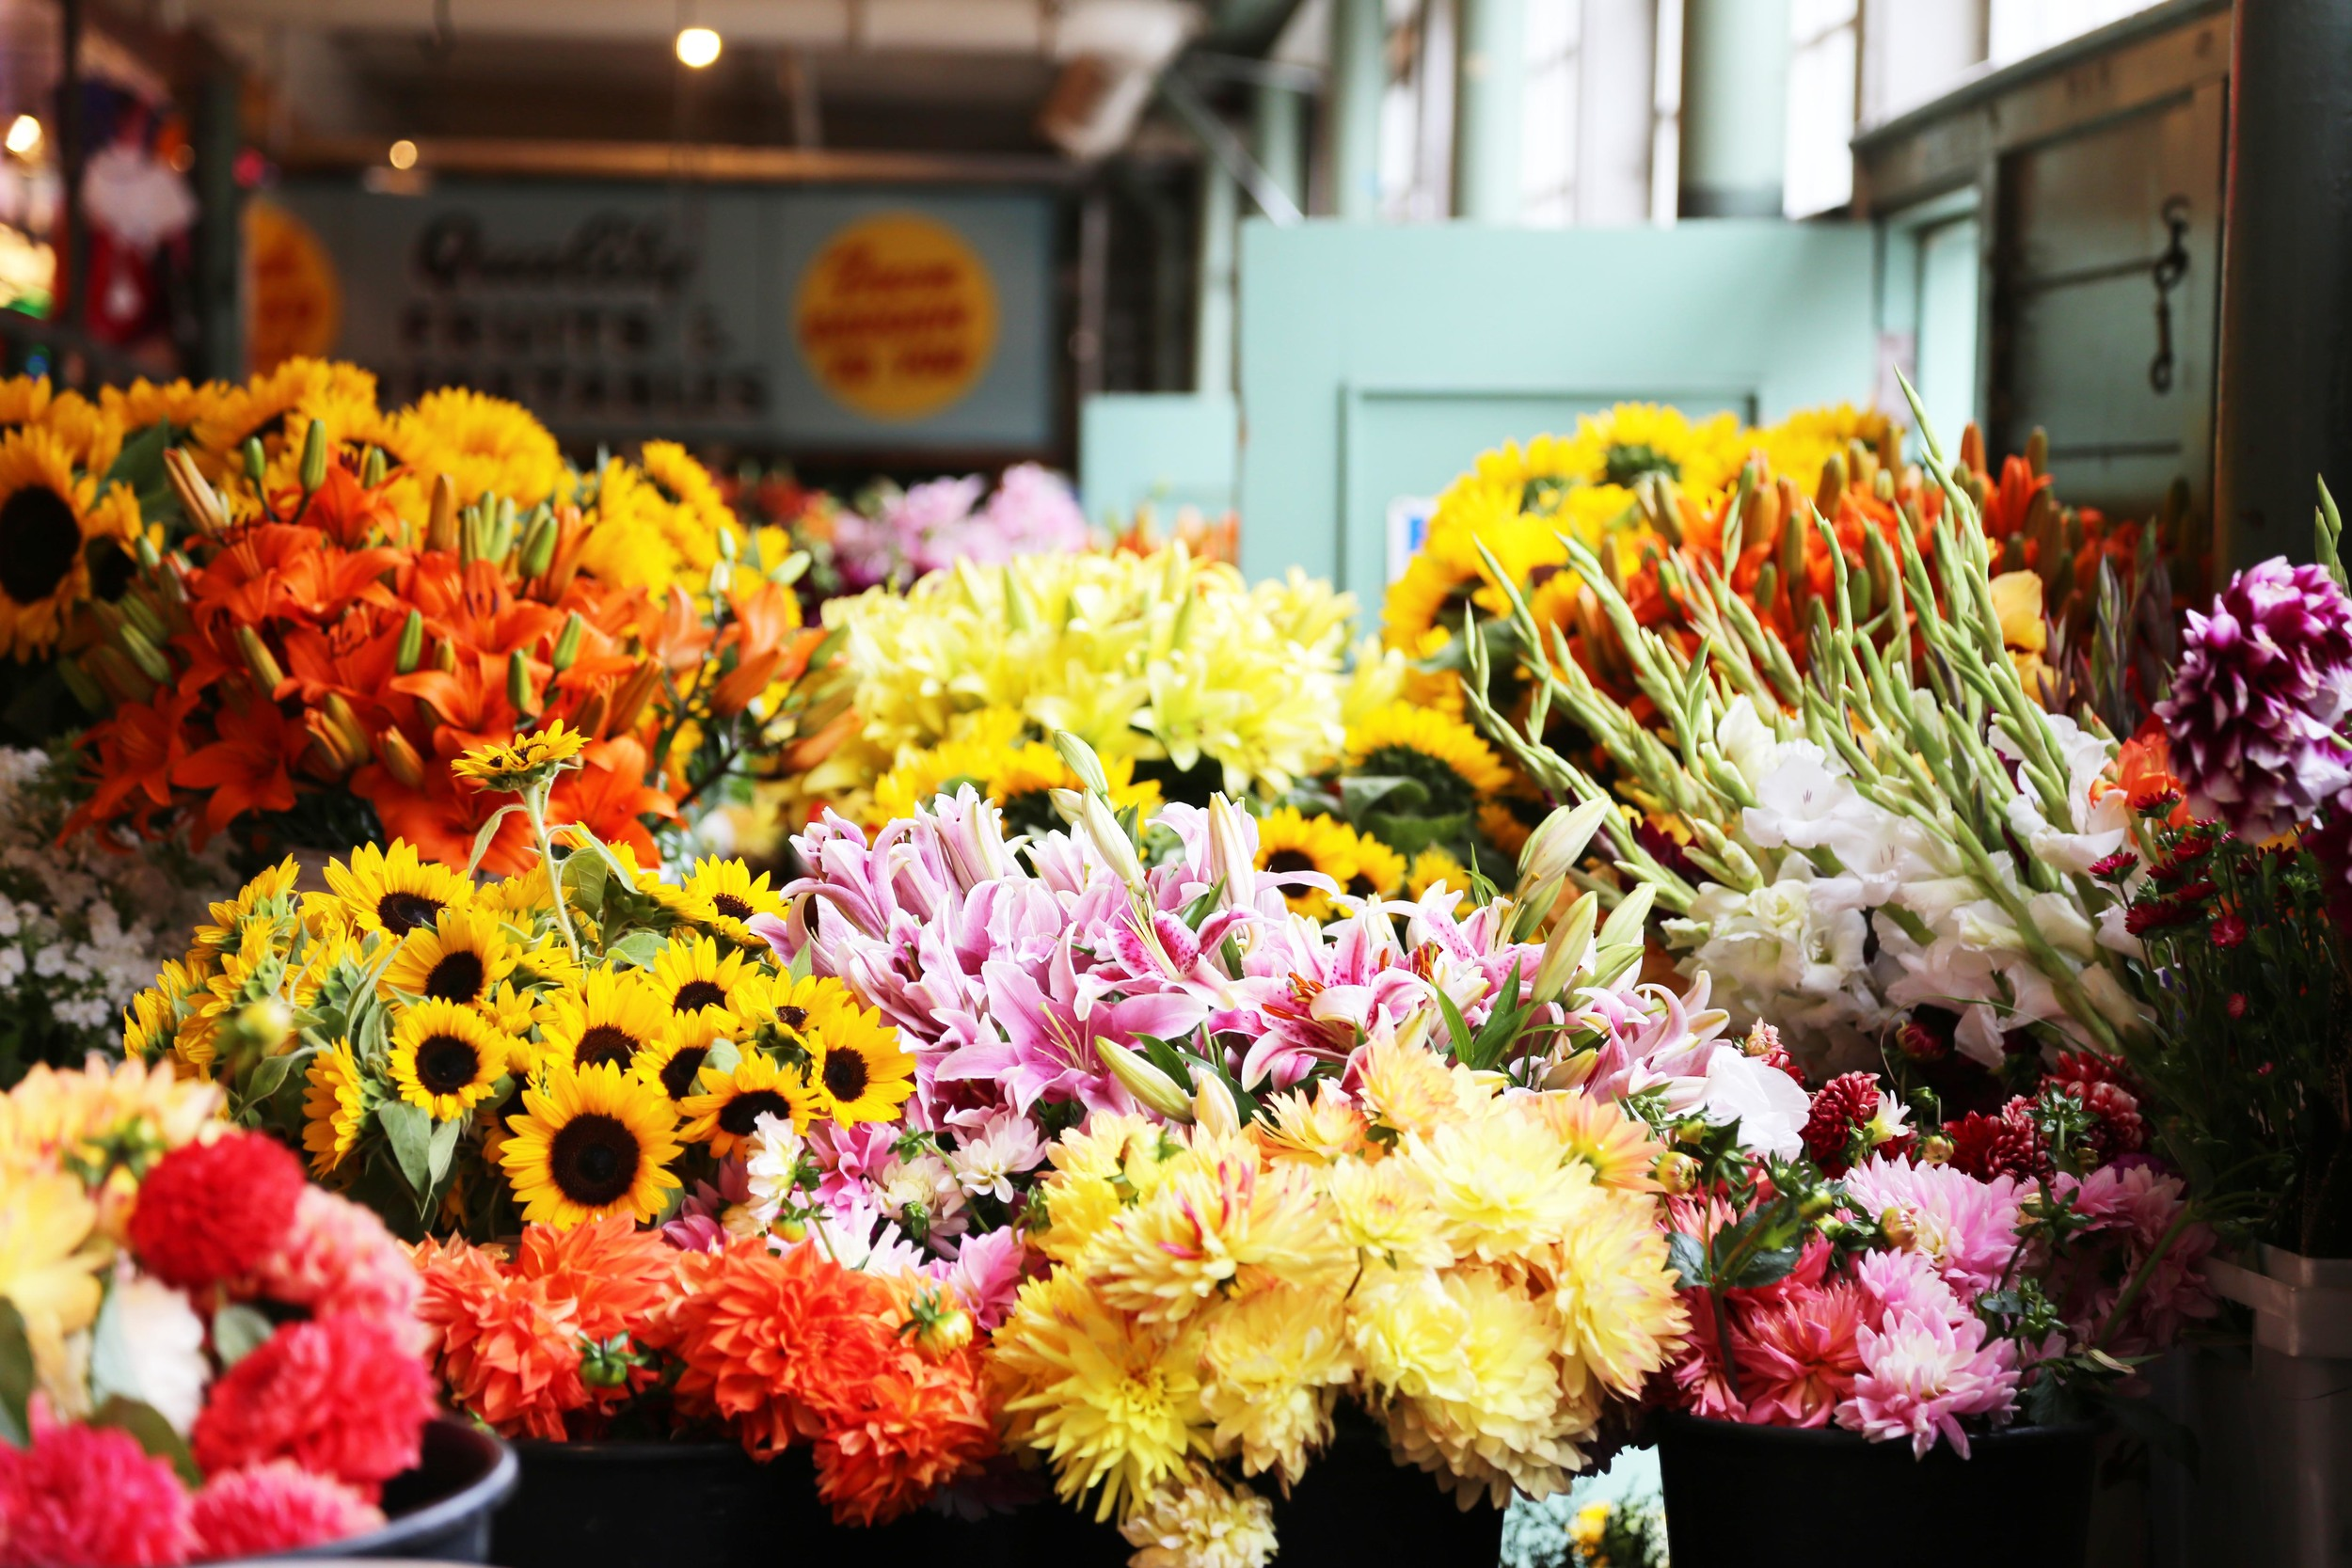 Flowers at Pike Place are a cheap, but beautiful bouquet choice!